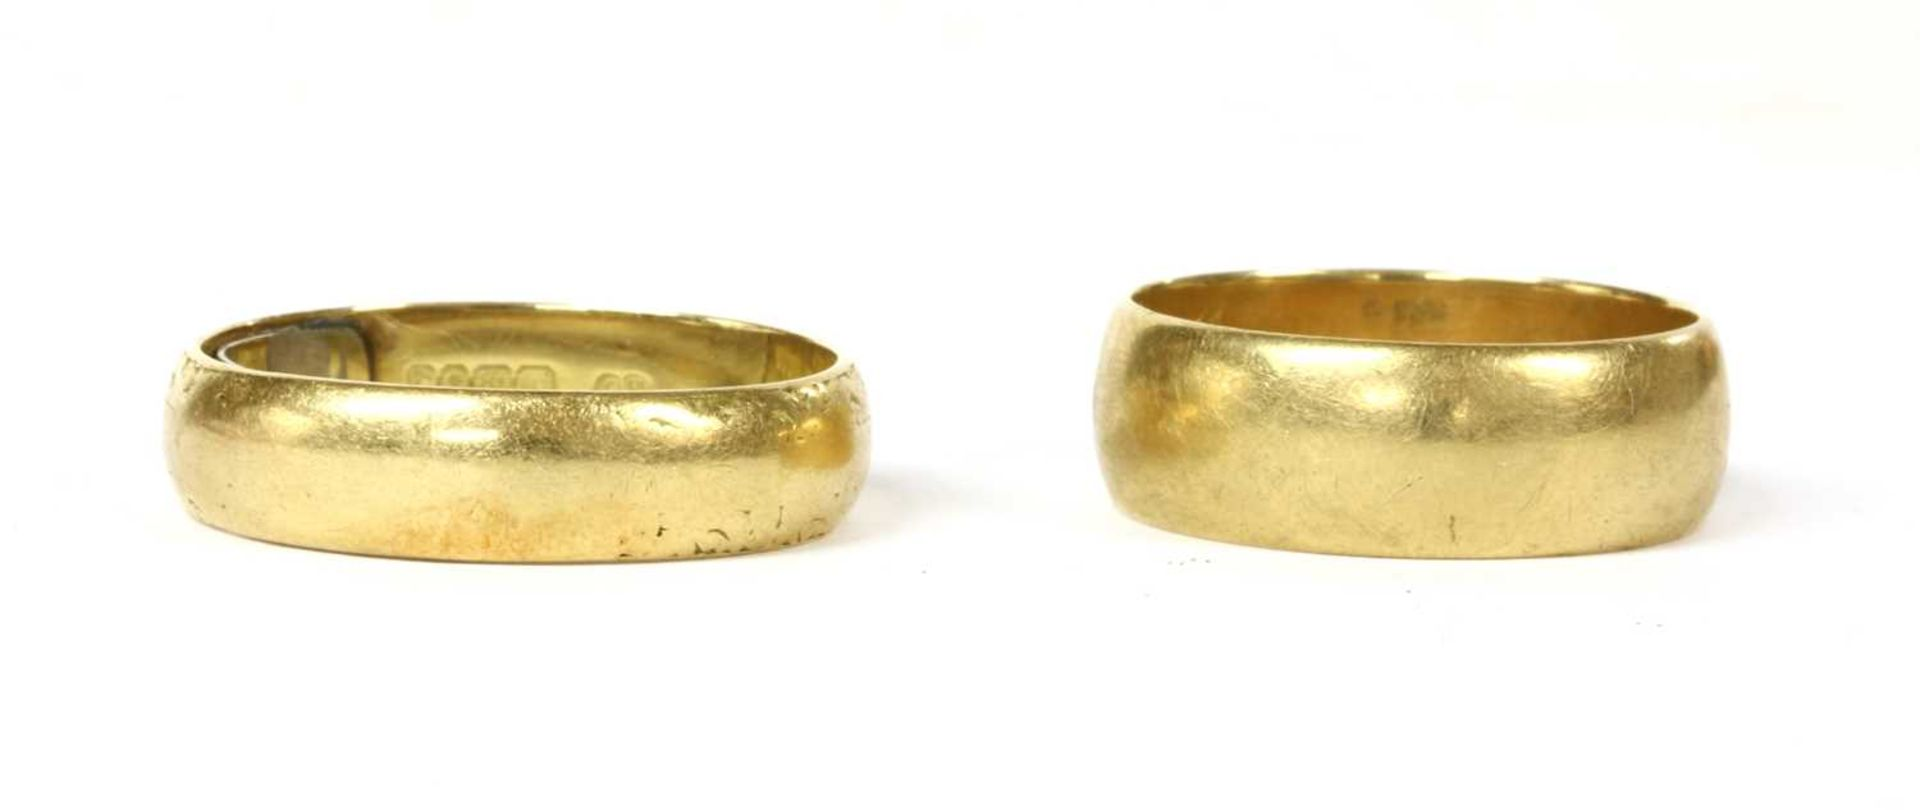 An 18ct gold 'D' section wedding ring,